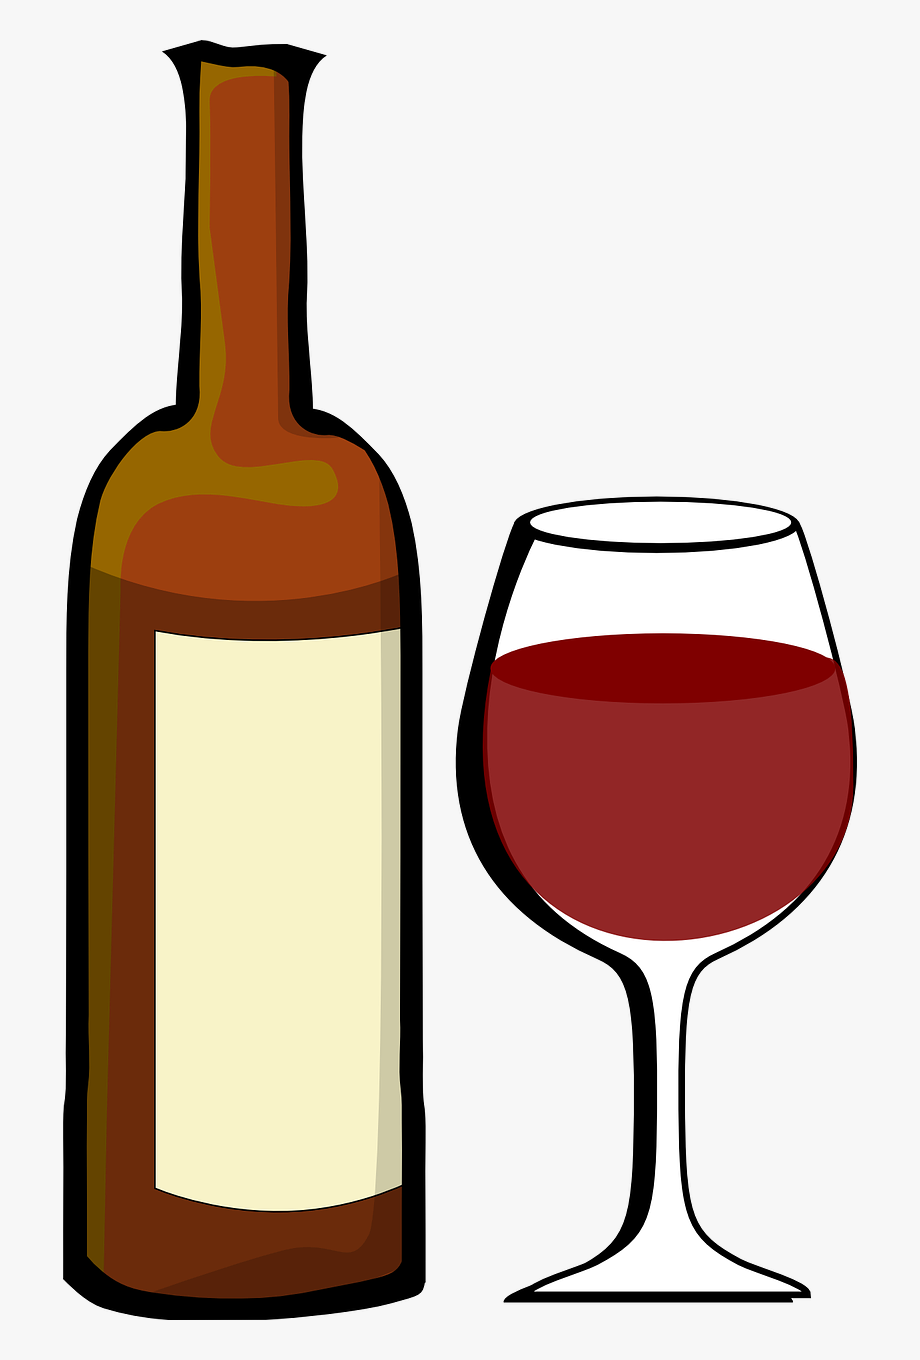 Download High Quality Wine Transparent PNG Images.